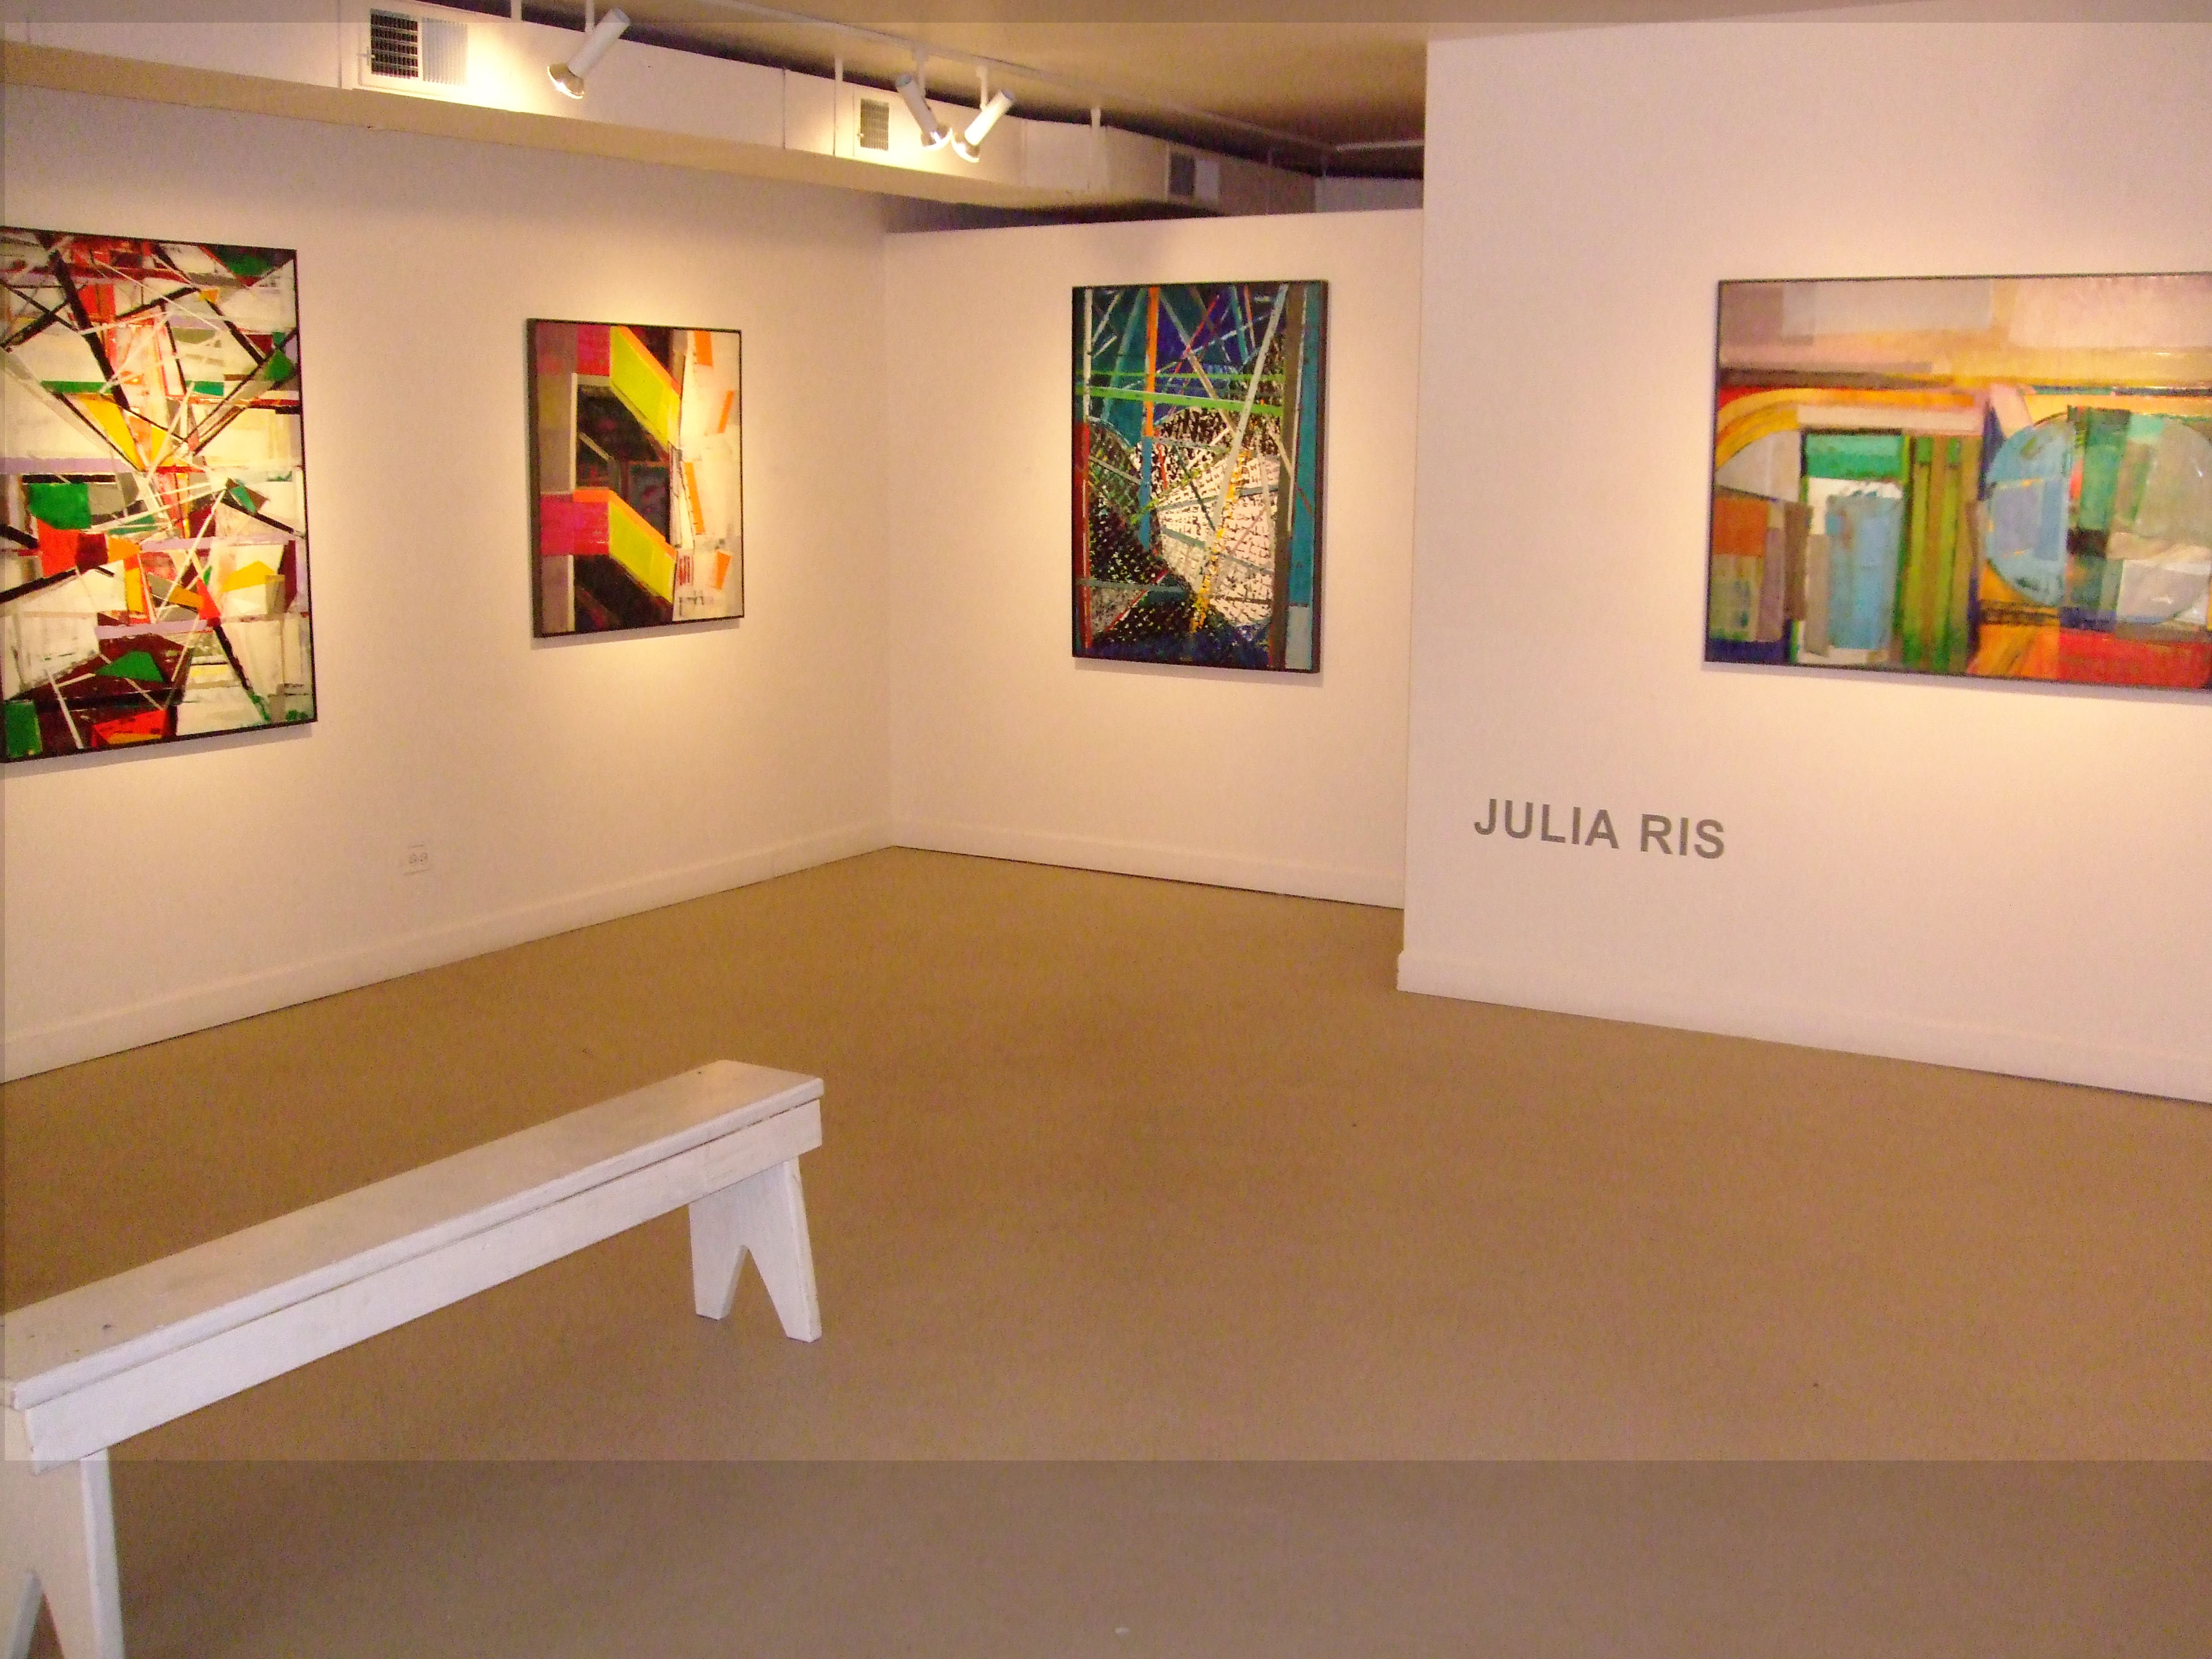 Julia Ris: Working the Angles, Encaustic Paintings Solo Show